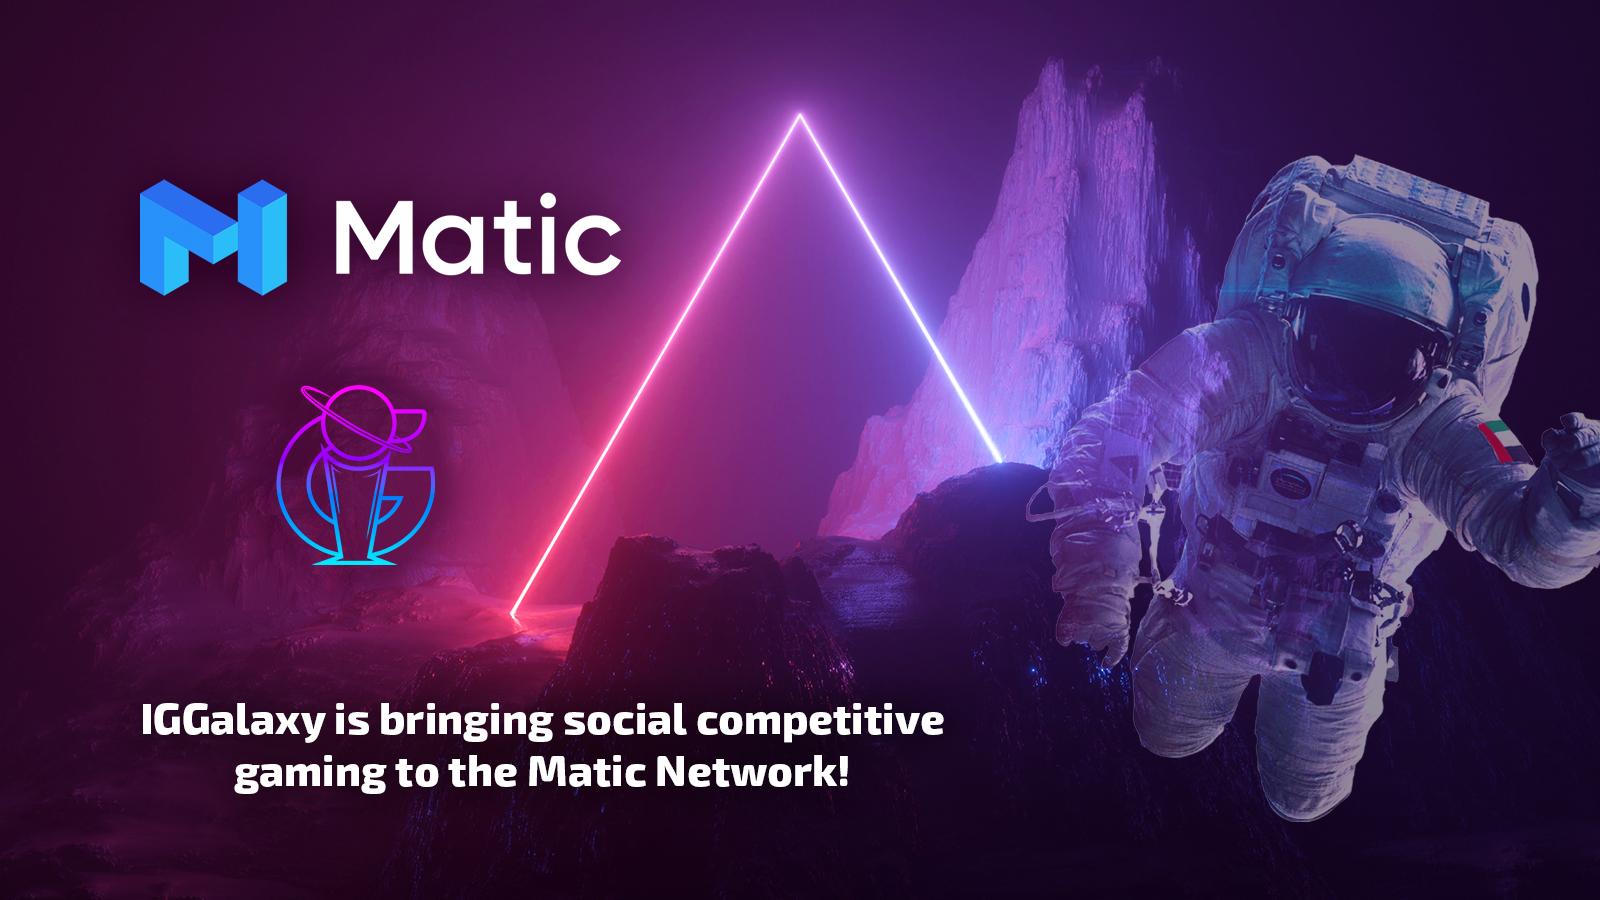 IGGalaxy, powered by Matic Network!